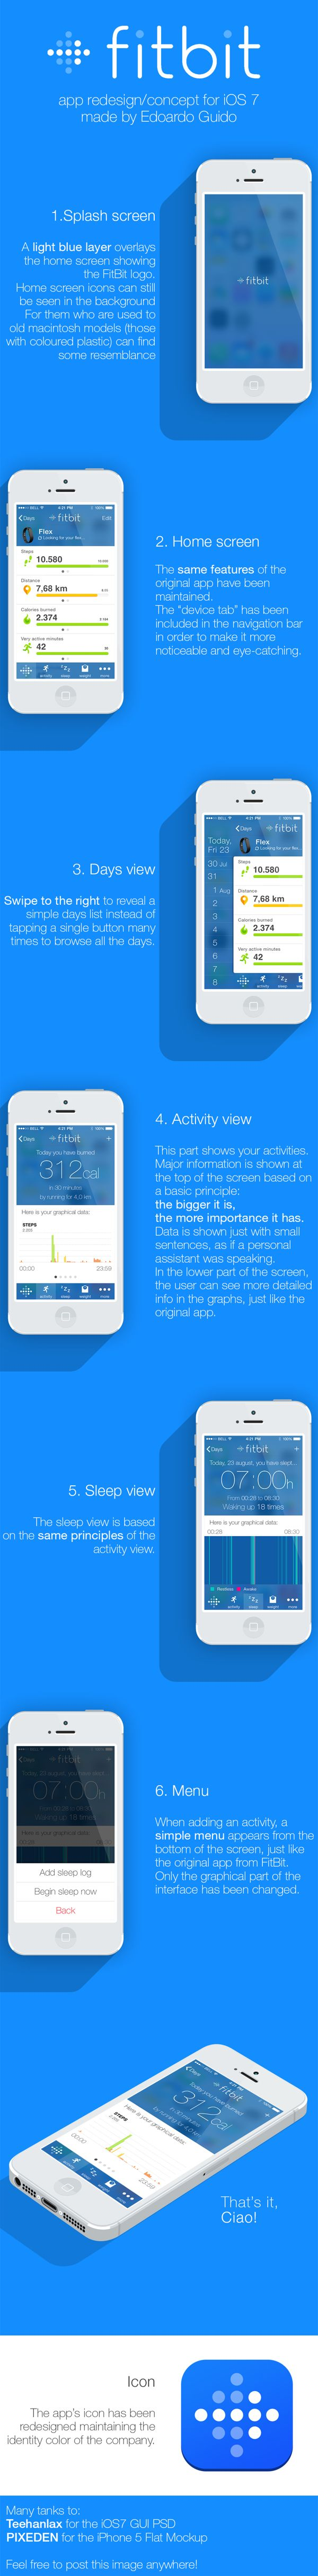 FitBit's iOS7 concept app by Edoardo Guido, via Behance